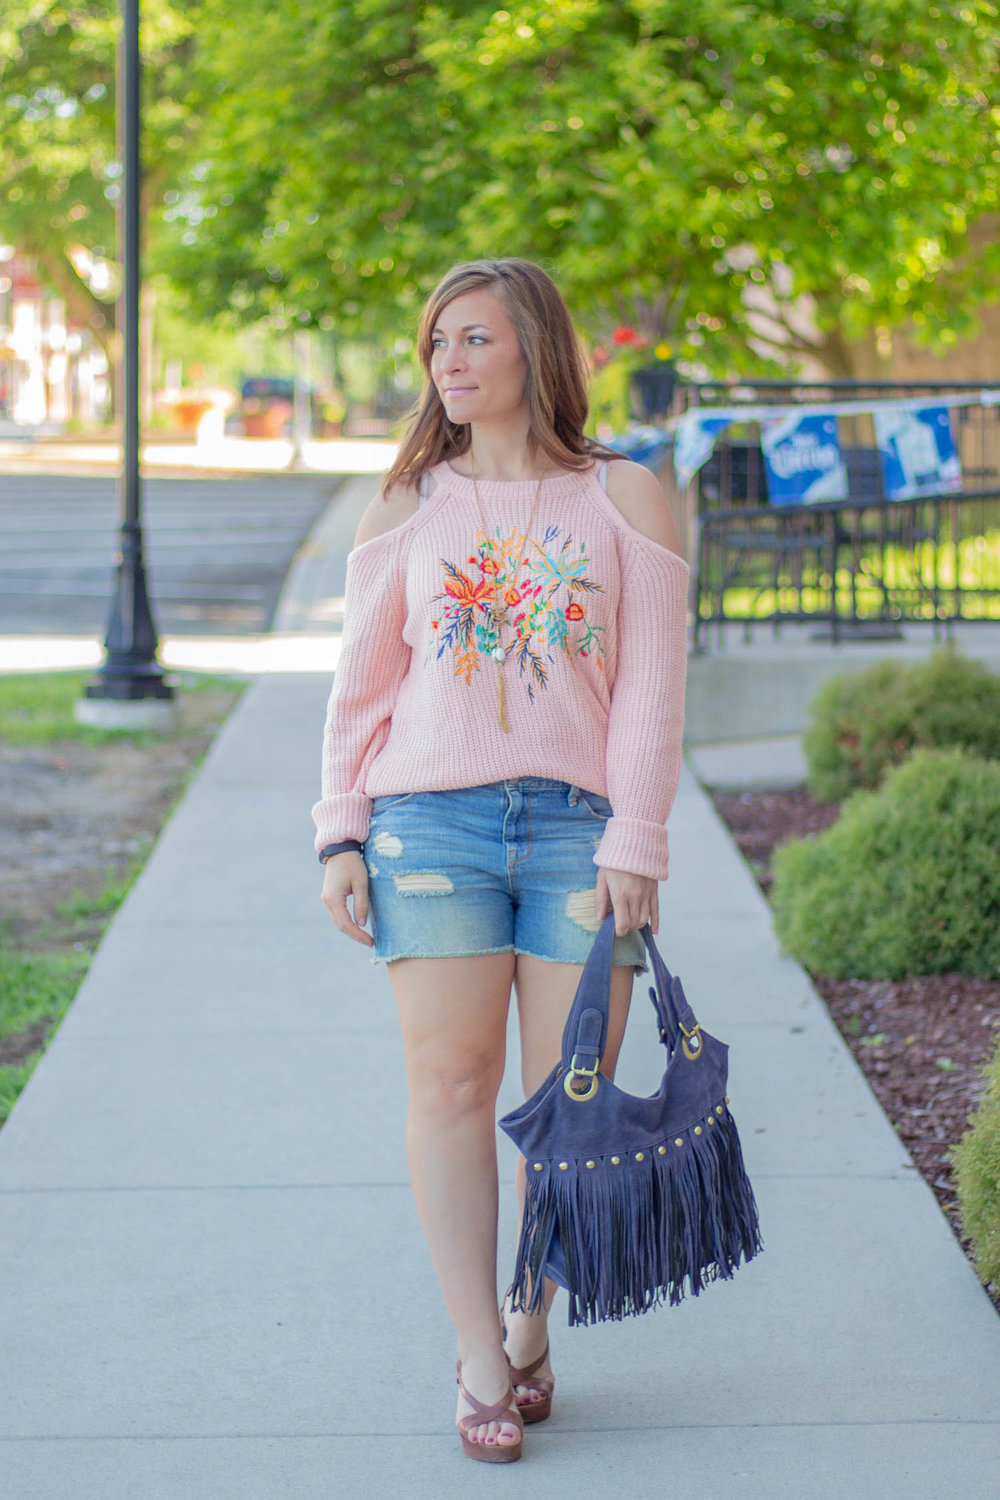 A perfectly cute outfit for summer, especially on cool night, is a cold shoulder sweater with embroidery and cutoffs. Add strappy wedge sandals and viola, summer perfection!